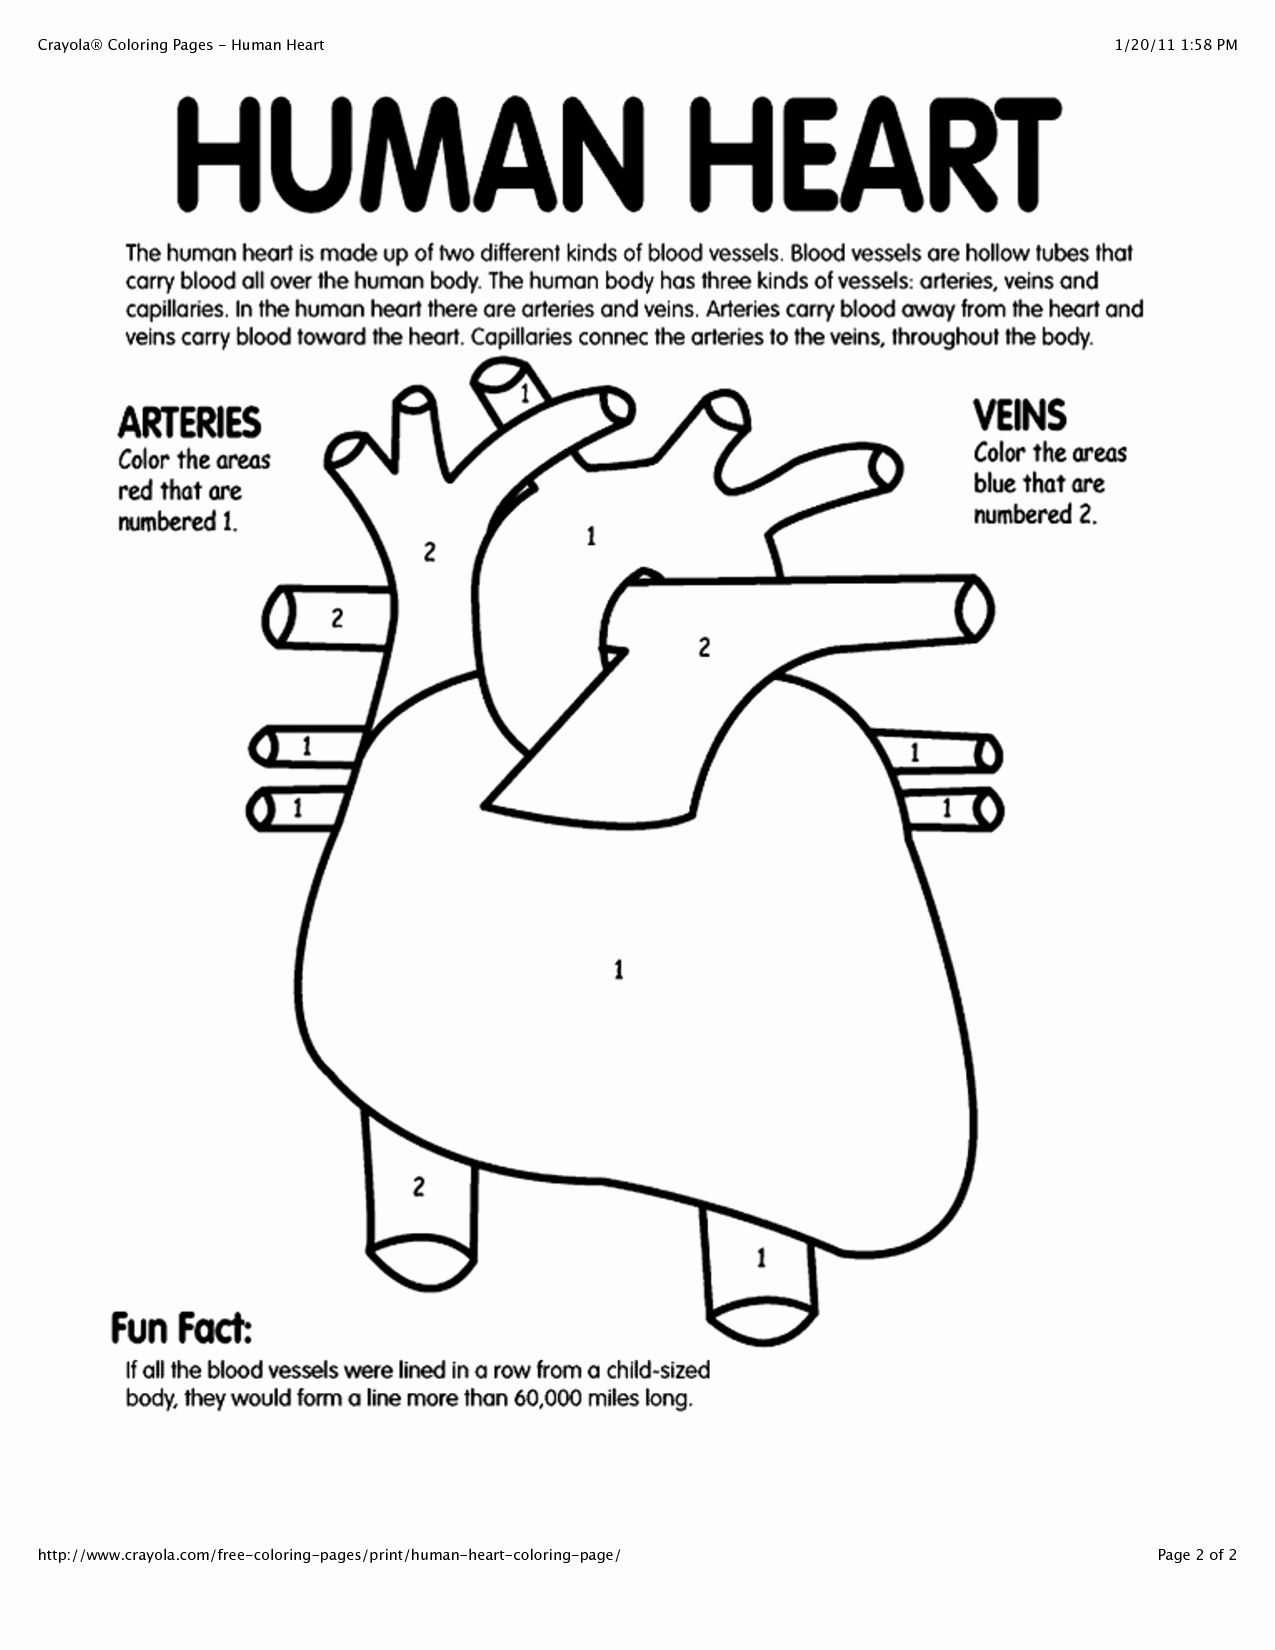 Human Body Coloring Page Inspirational Human Heart Color Pages I Had To Exit Then Return To Page Anatomy Coloring Book Heart Coloring Pages Human Body Systems